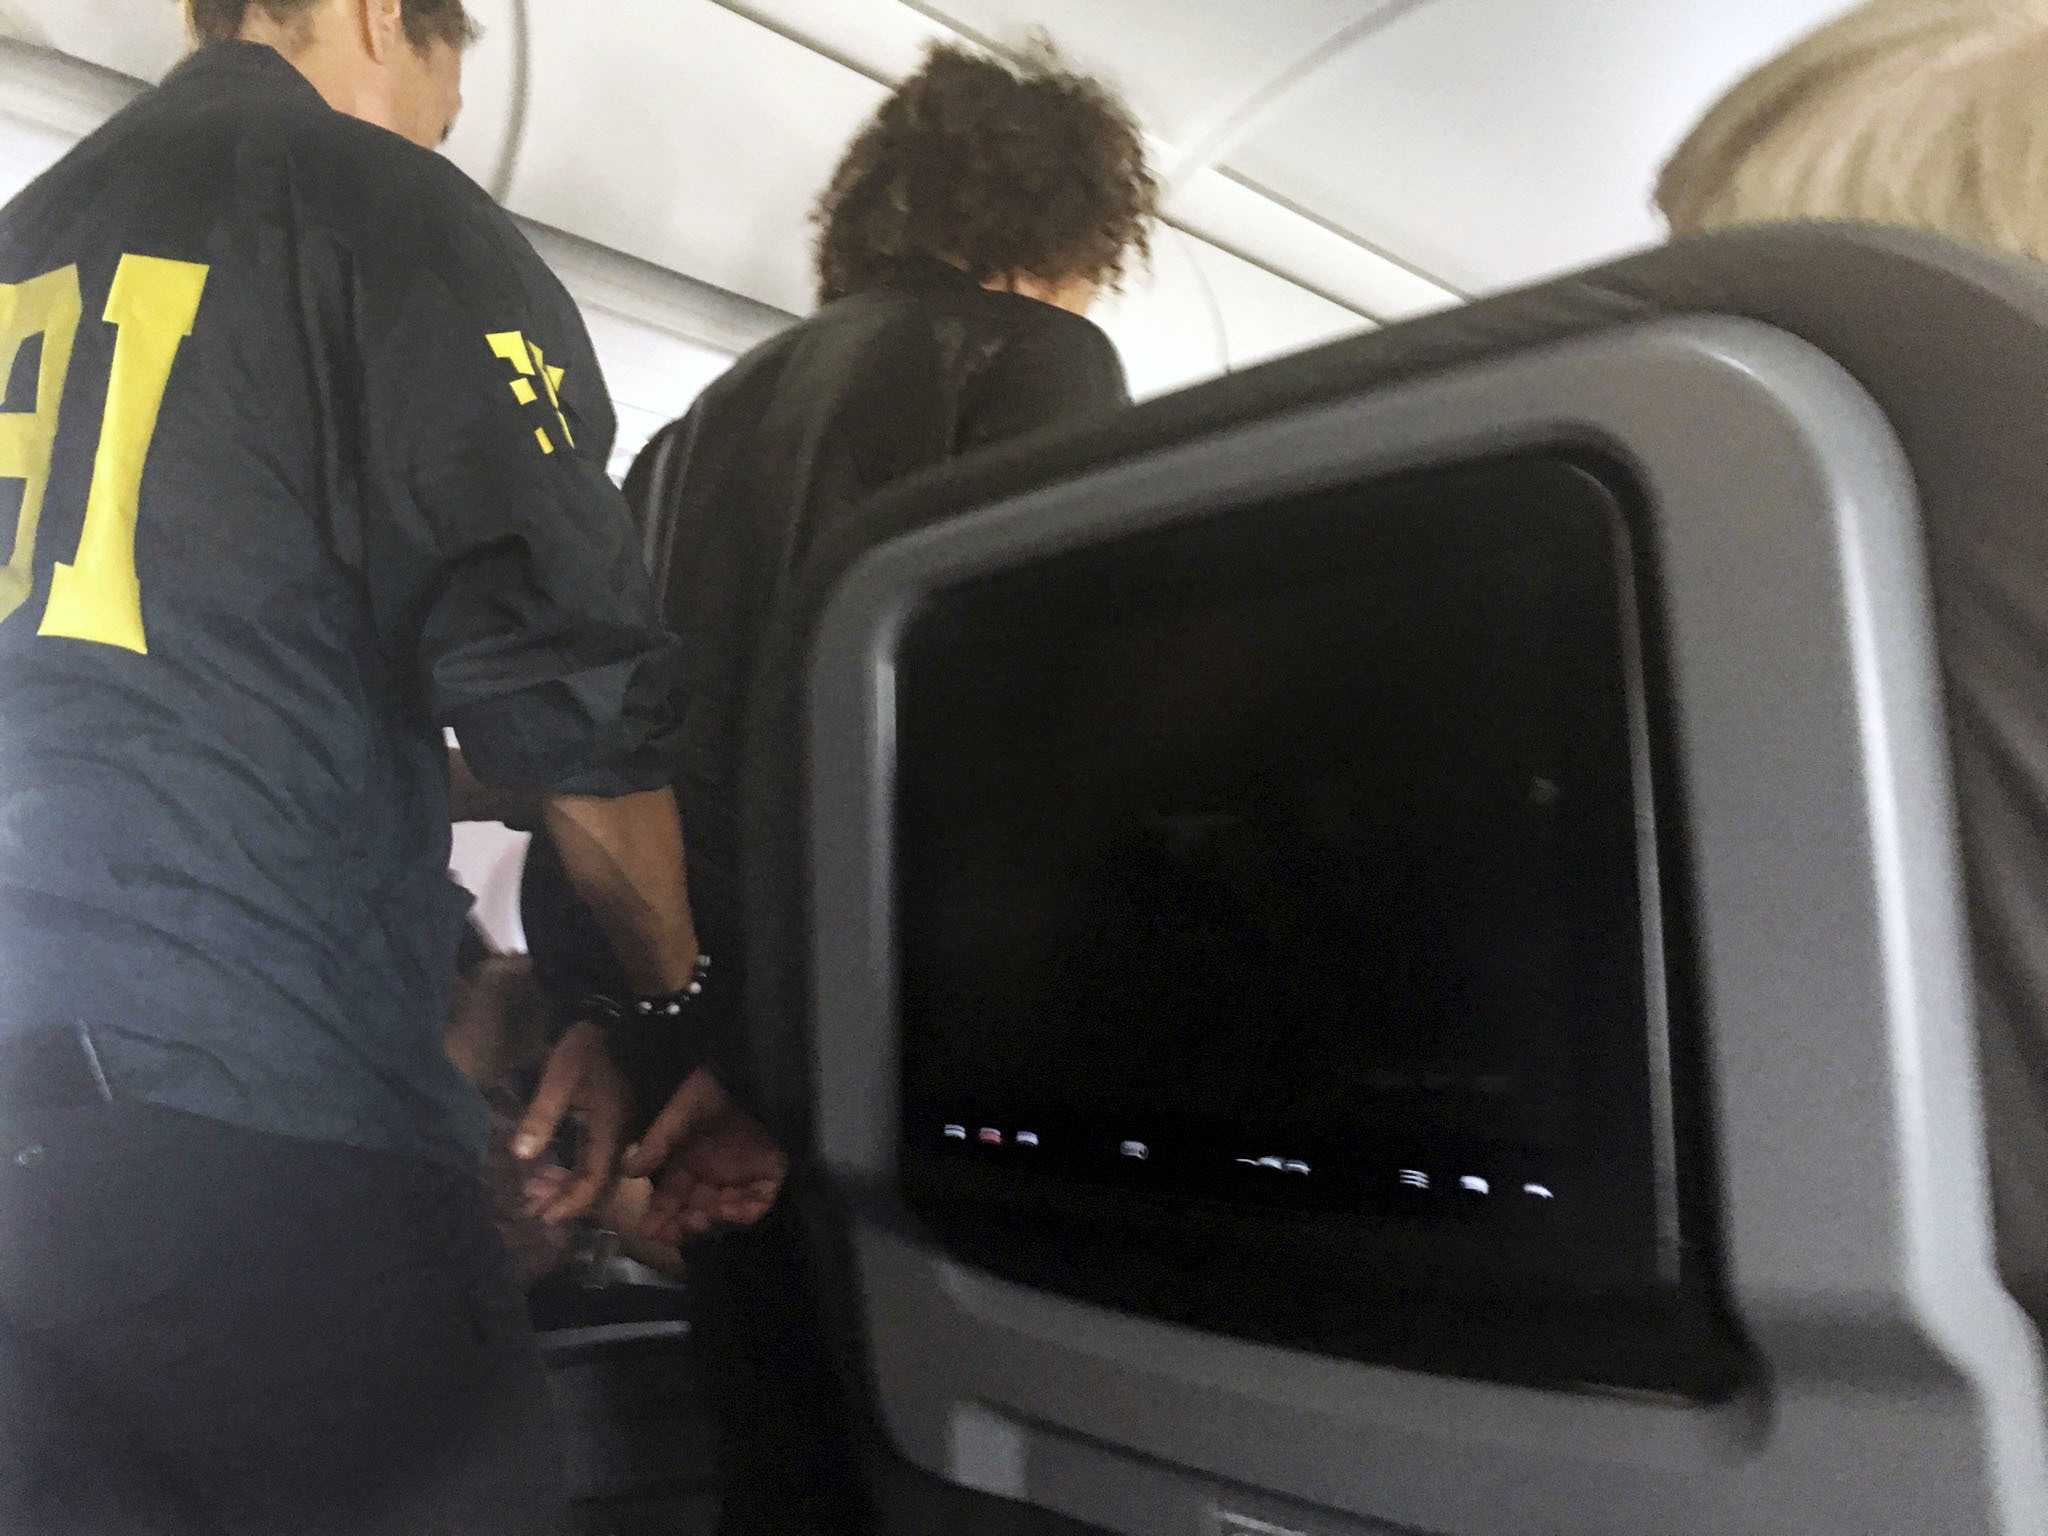 Turkey: Man Detained on US Plane Just Wanted 1st Class Seat